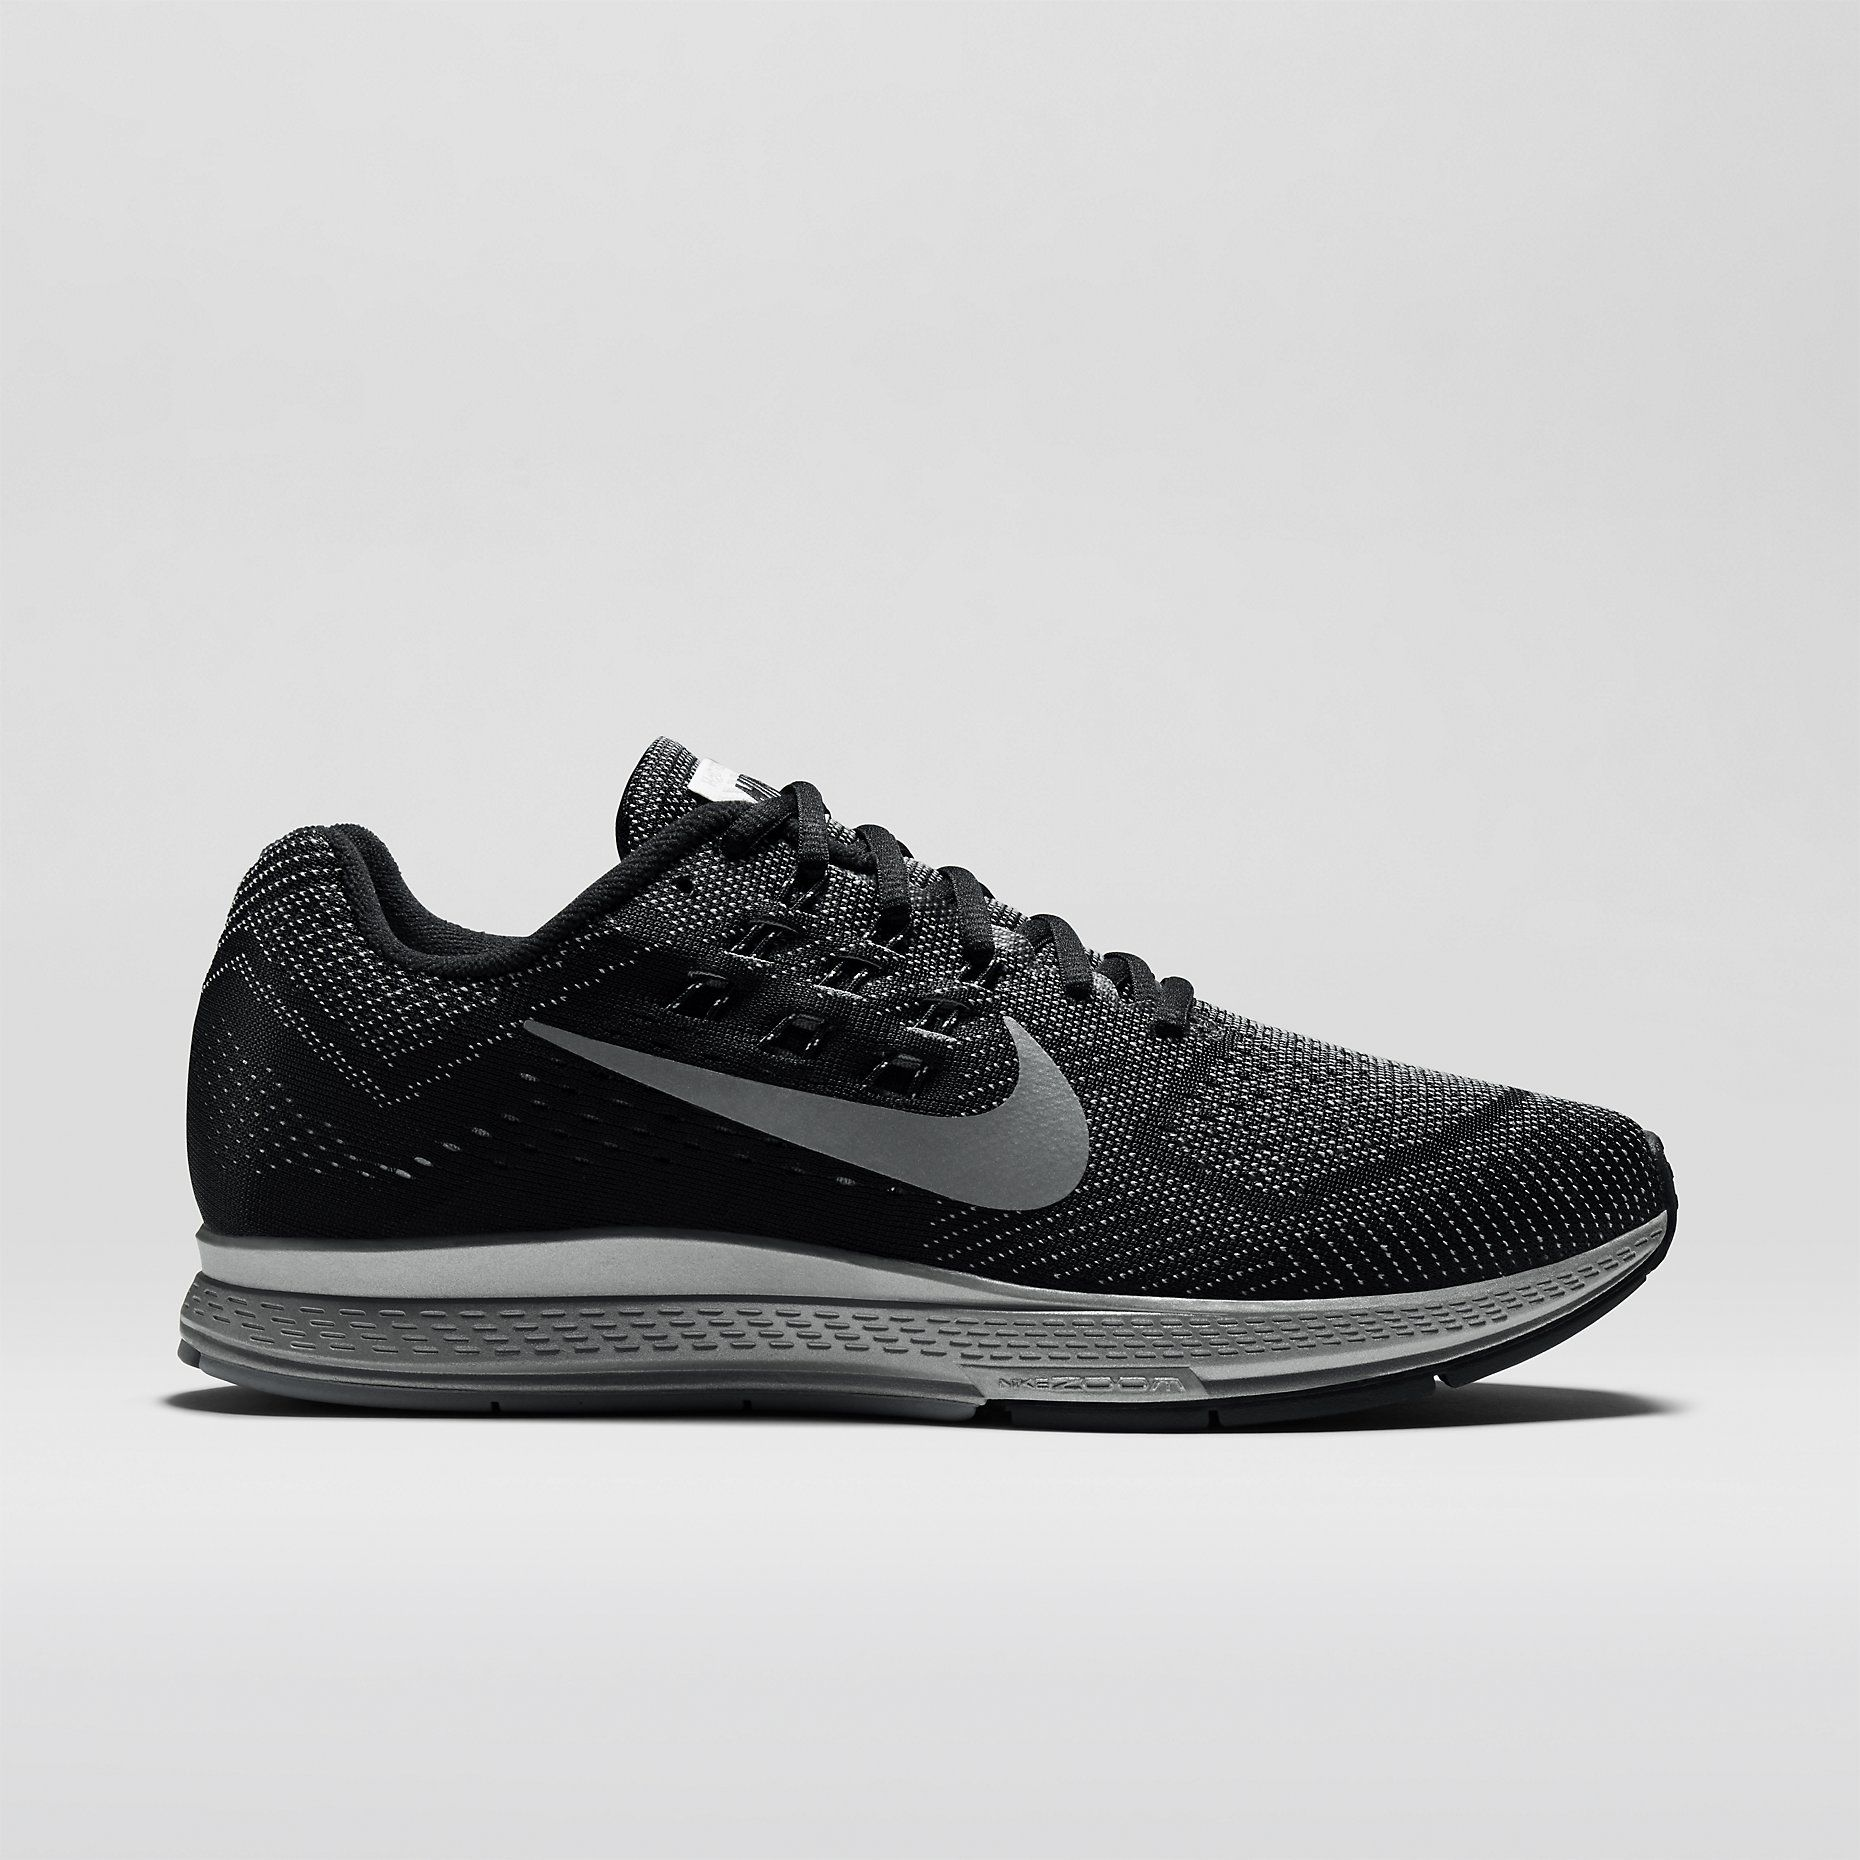 Días laborables maduro Incorporar  Nike Air Zoom Structure 18 Flash | Running shoes for men, Mens nike shoes,  New mens nike shoes